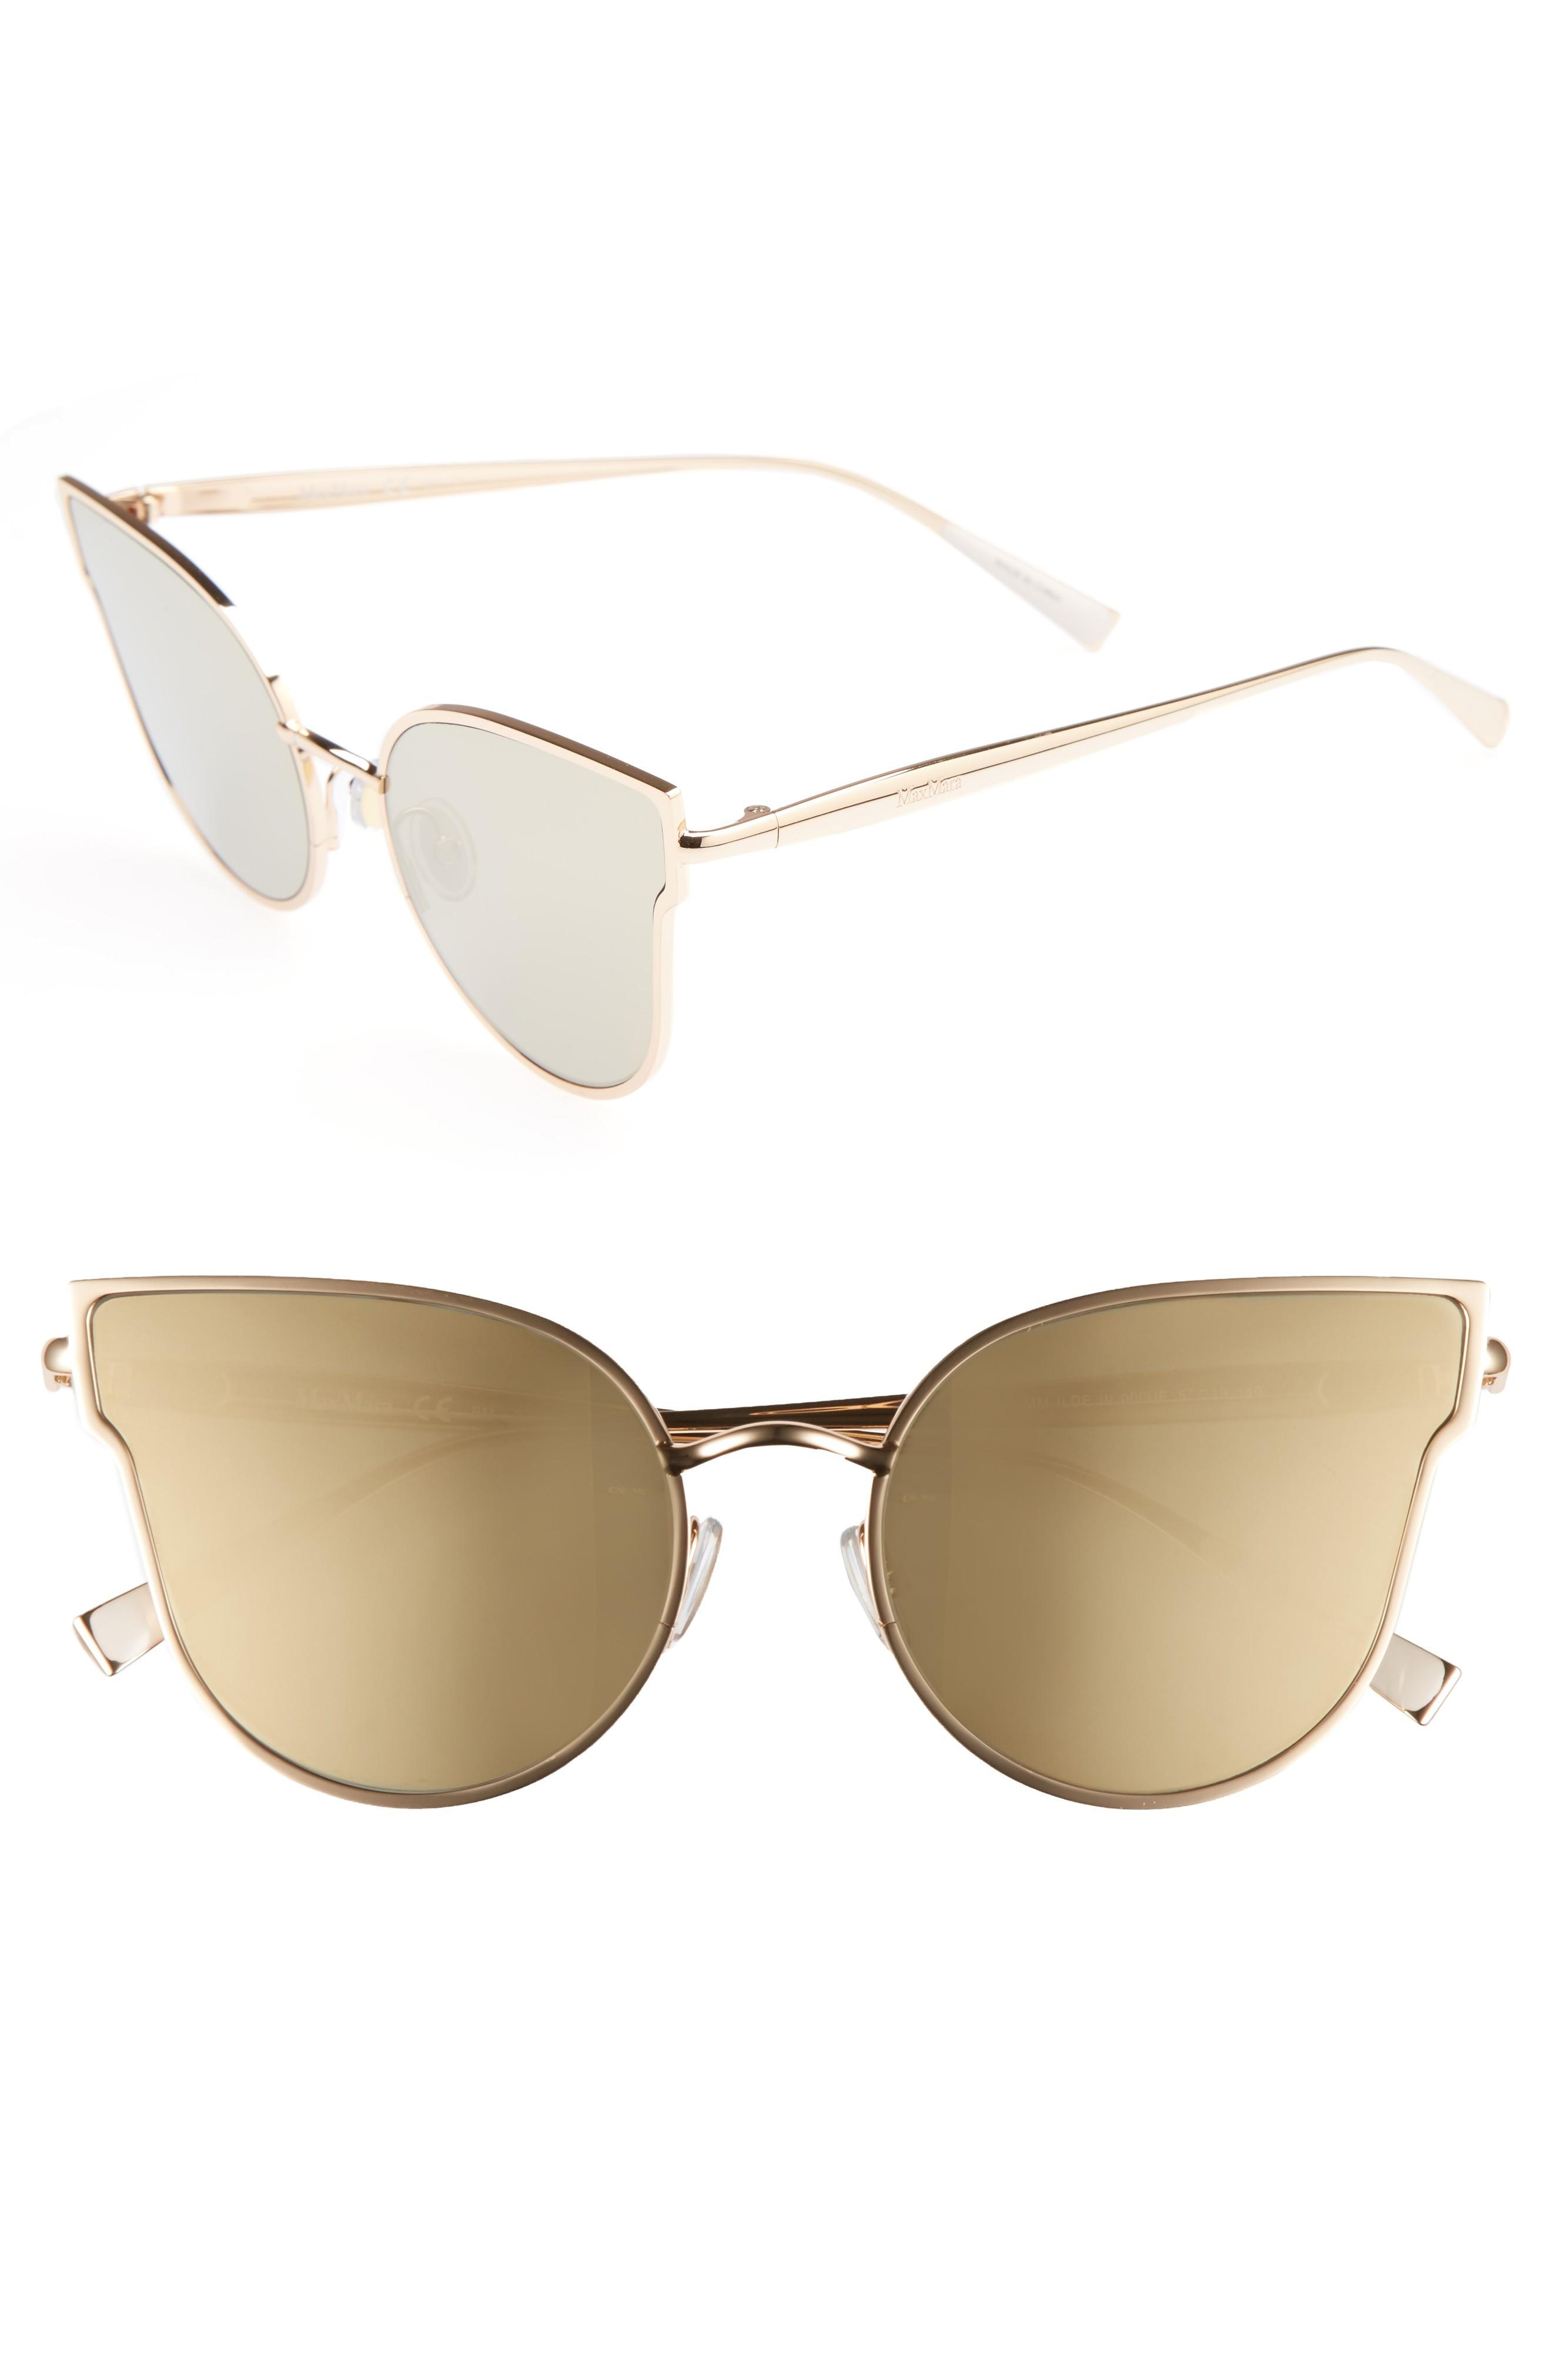 d1ca6e207432 Max Mara Ilde Iii 57Mm Mirrored Cat Eye Sunglasses - Rose Gold ...